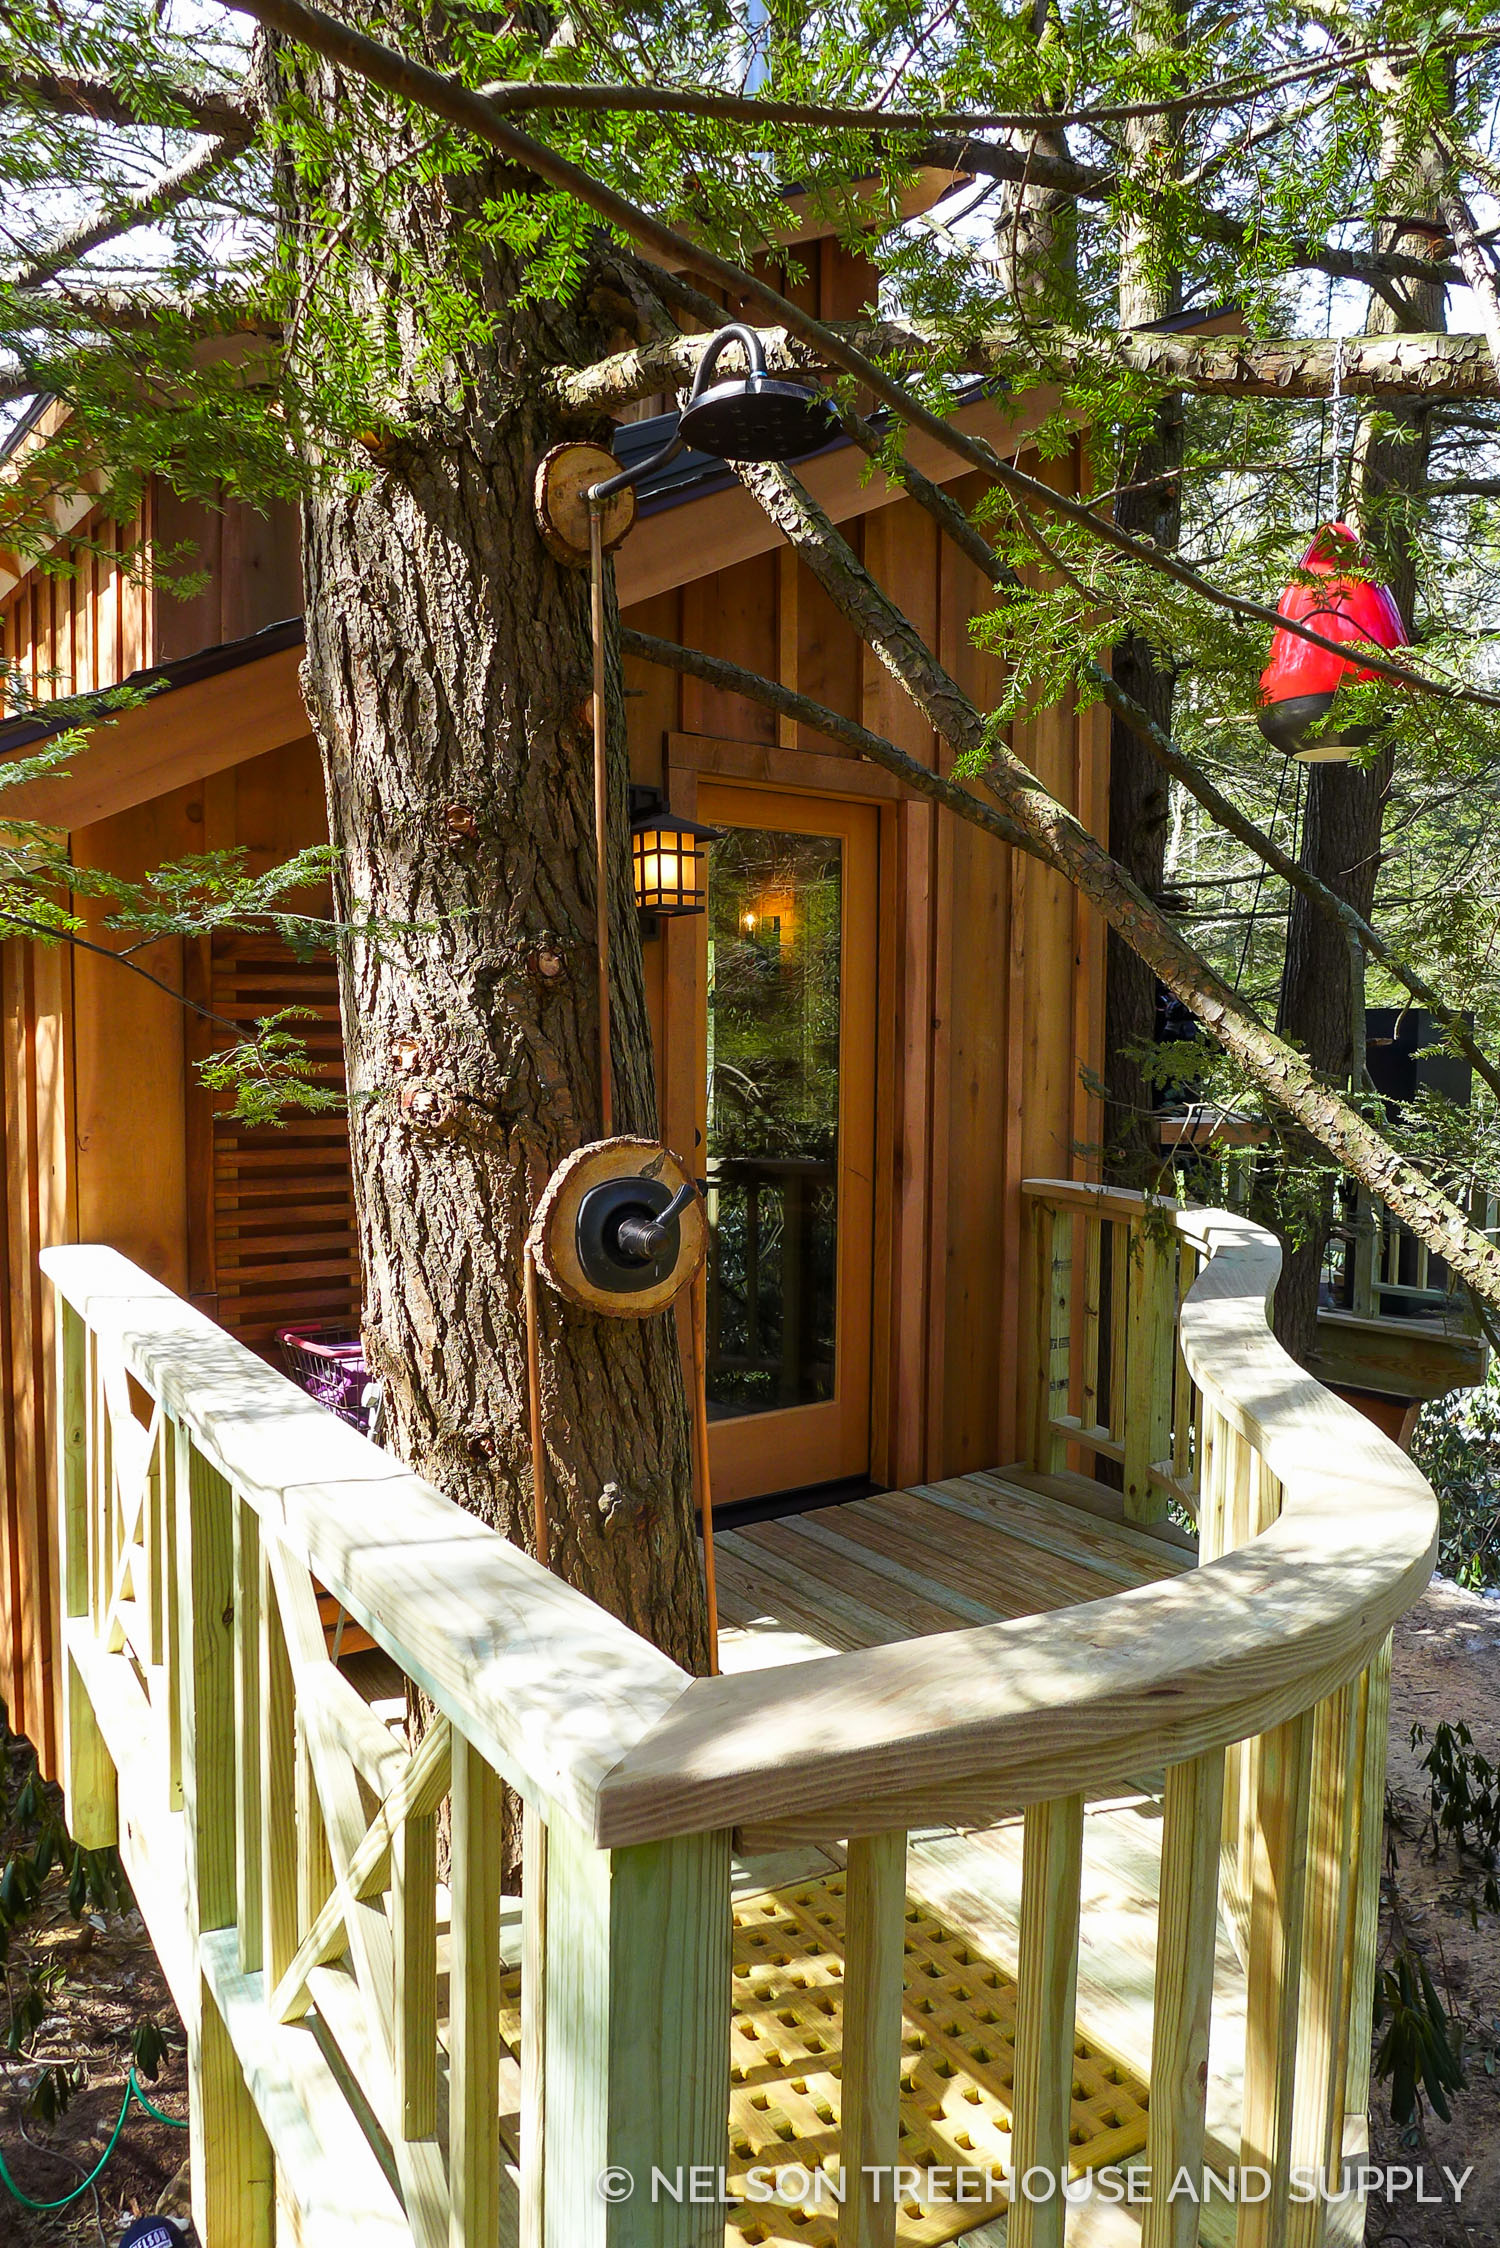 This treehouse in Pennsylvania also included an outdoor shower. It's much more simple than lugging gallons of water up to the treehouse!